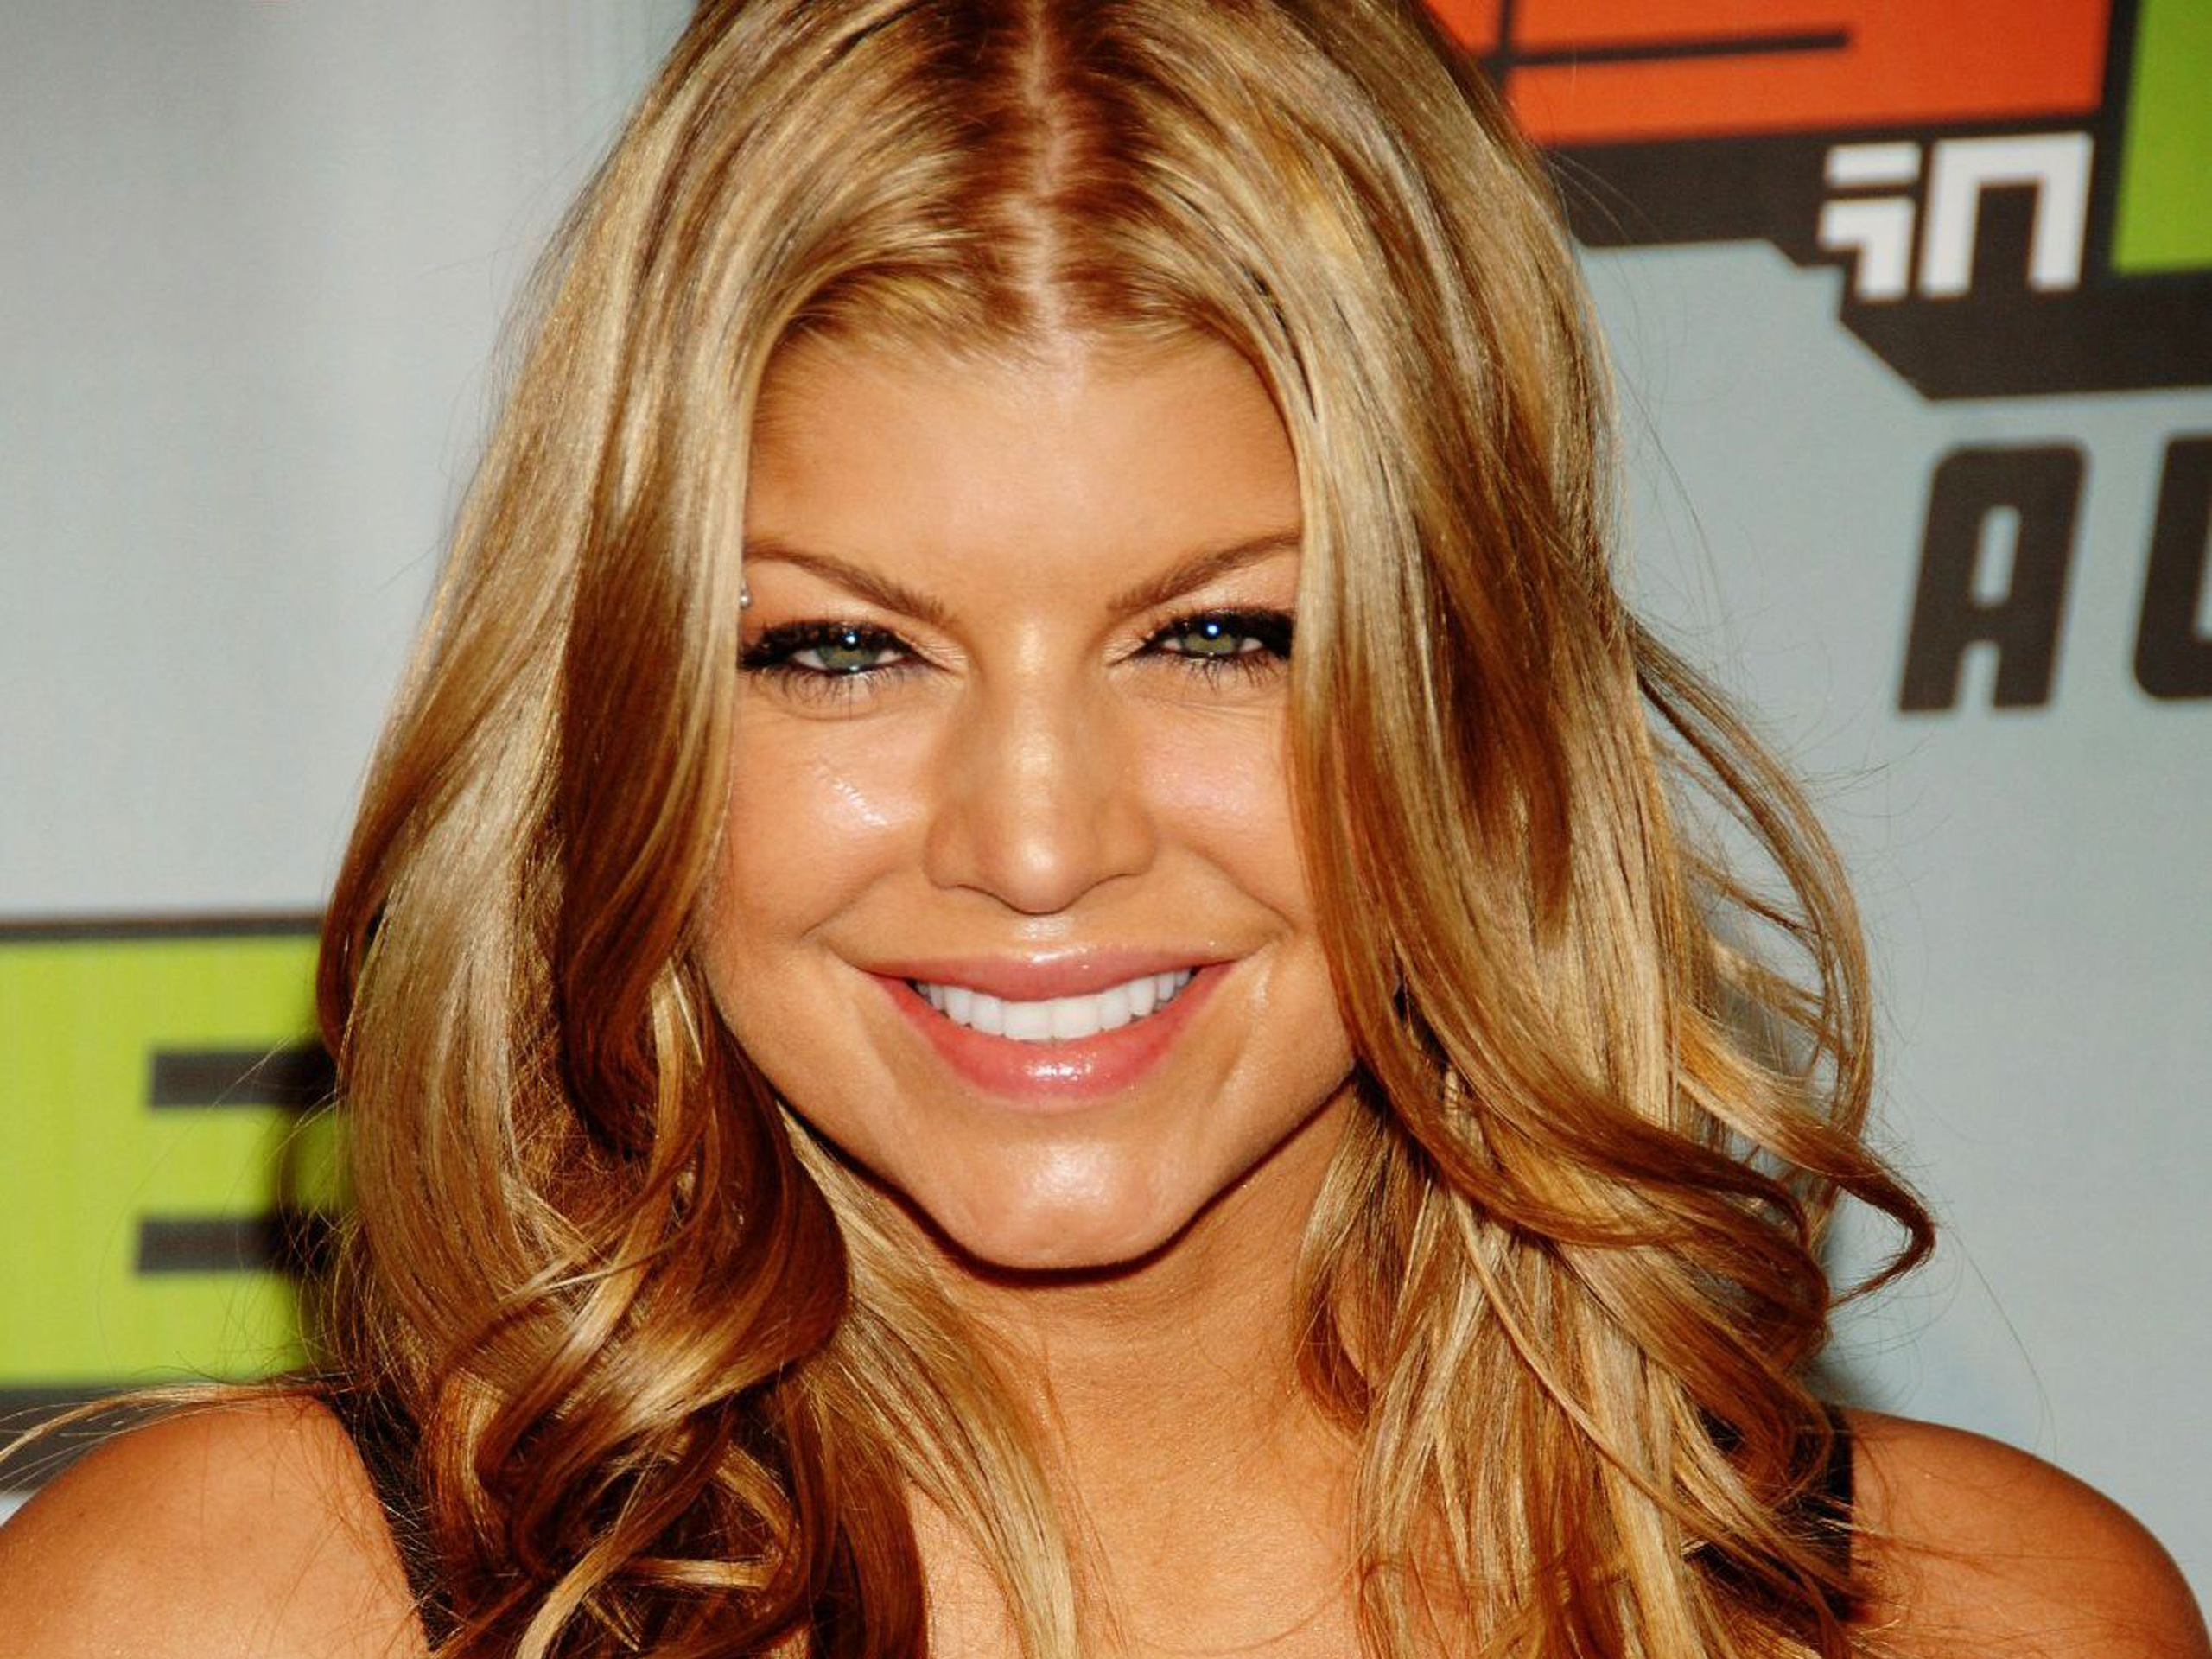 Fergie TheWallpapers   Free Desktop Wallpapers for HD, Widescreen and ... Fergie